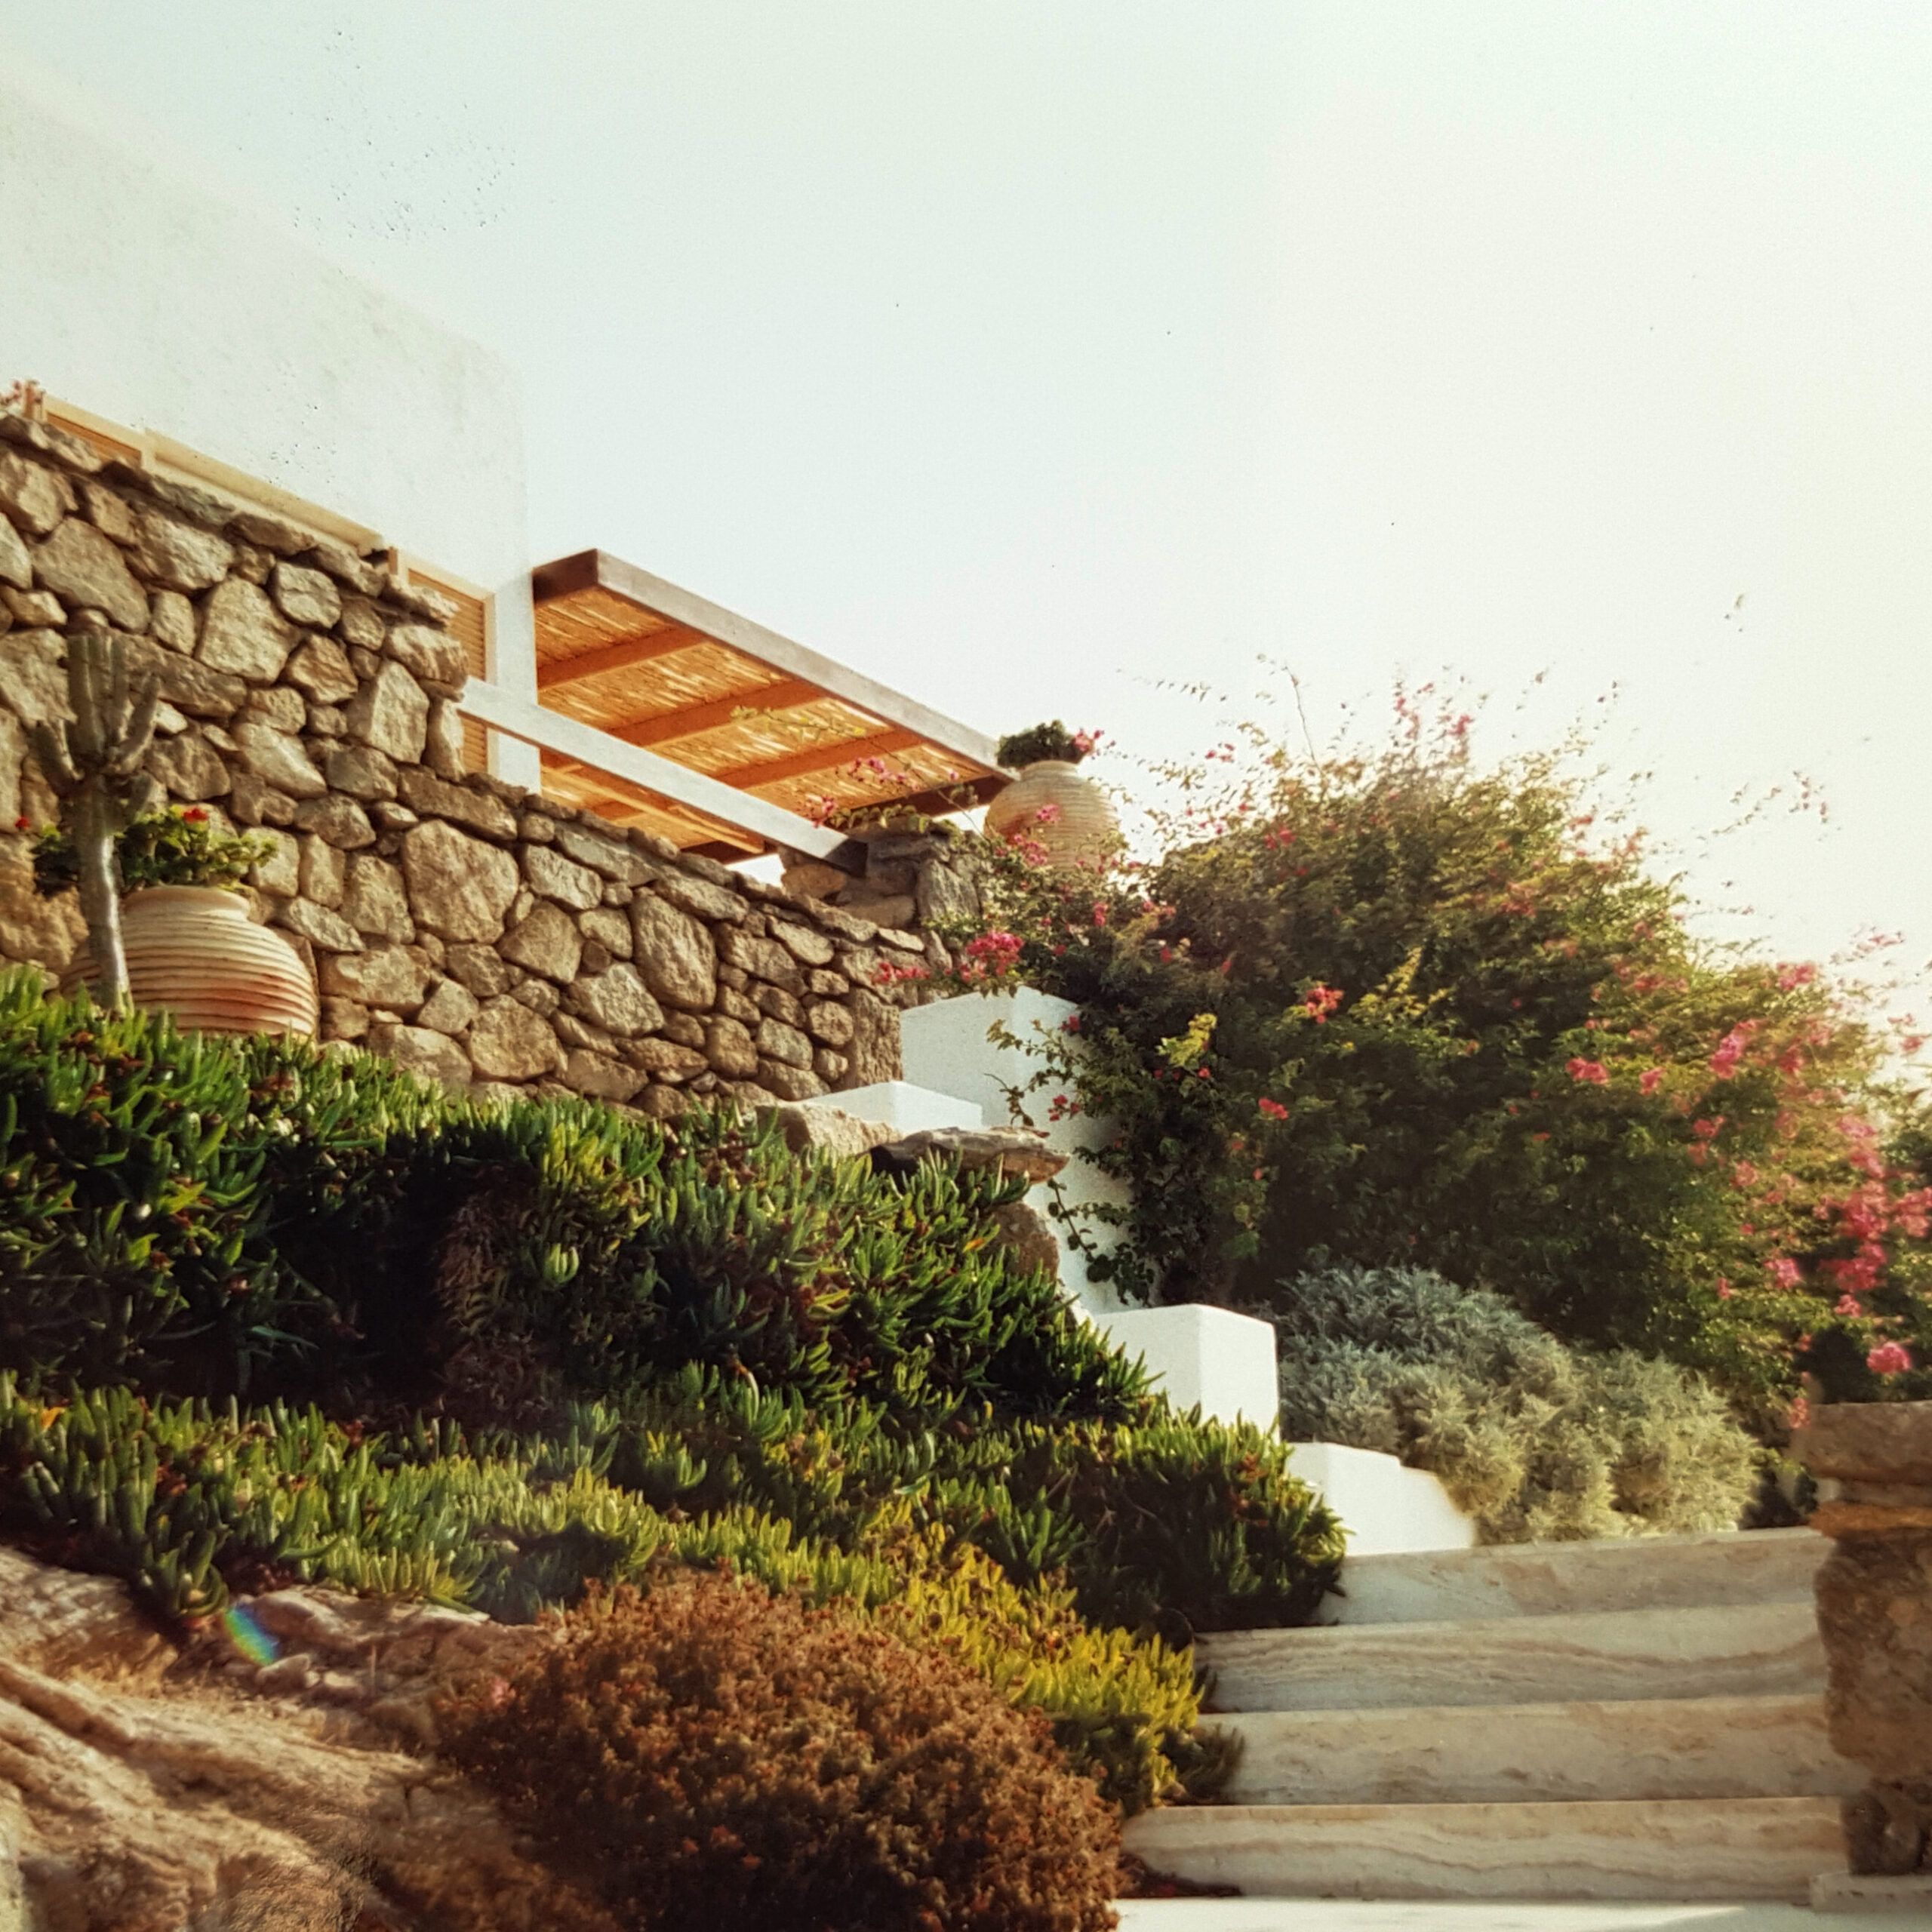 exceptionally maintained garden of Mykonos